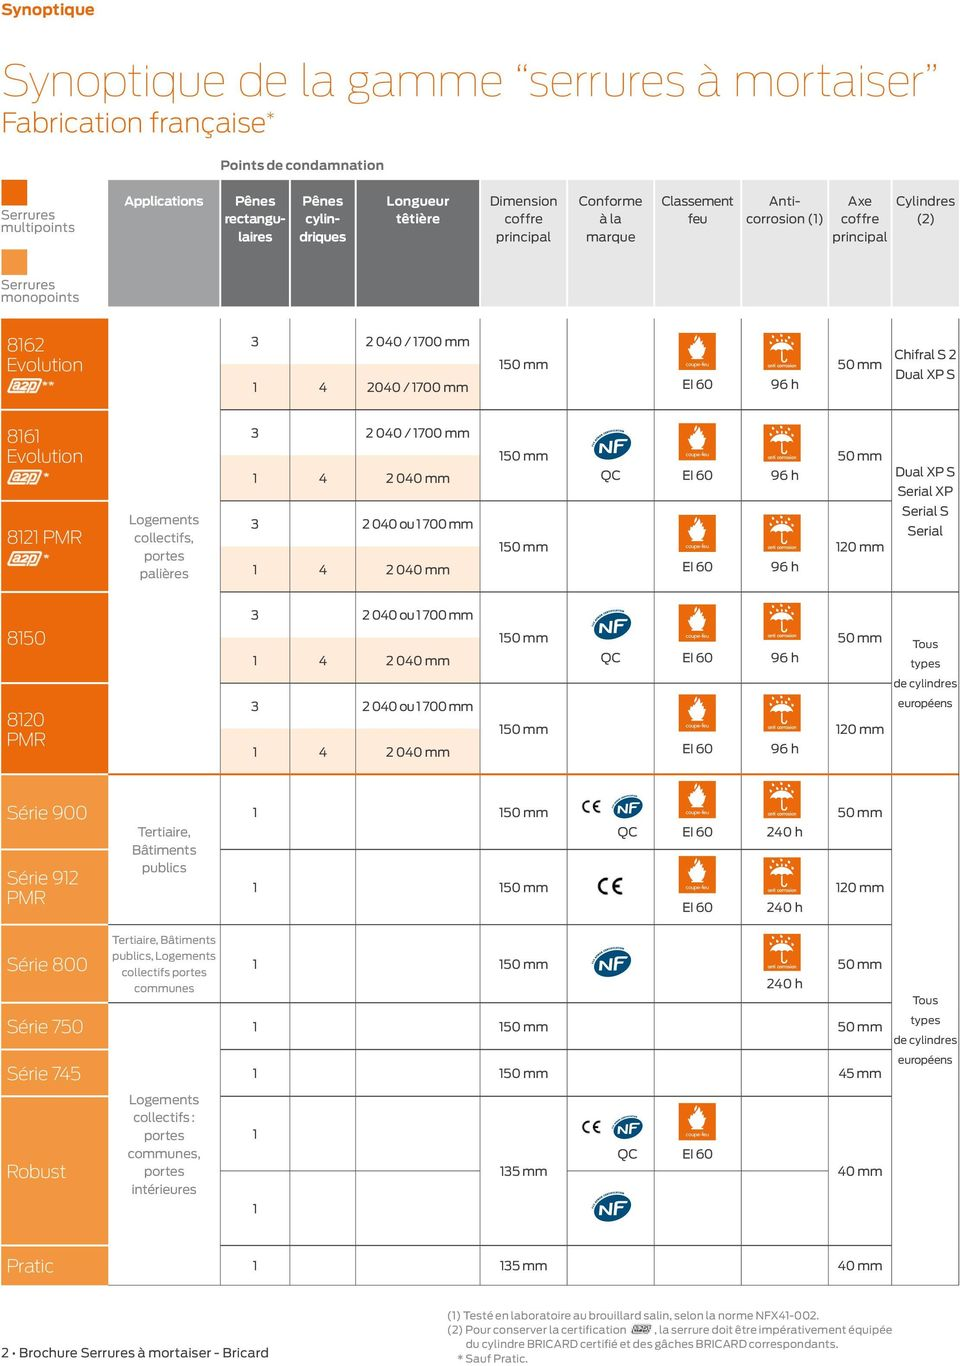 60 96 h 50 mm Chifral S 2 Dual XP S 8161 Evolution 3 2 040 / 1700 mm 1 4 2 040 mm 150 mm QC EI 60 96 h 50 mm Dual XP S Serial XP 8121 PMR Logements collectifs, portes palières 3 2 040 ou 1 700 mm 1 4